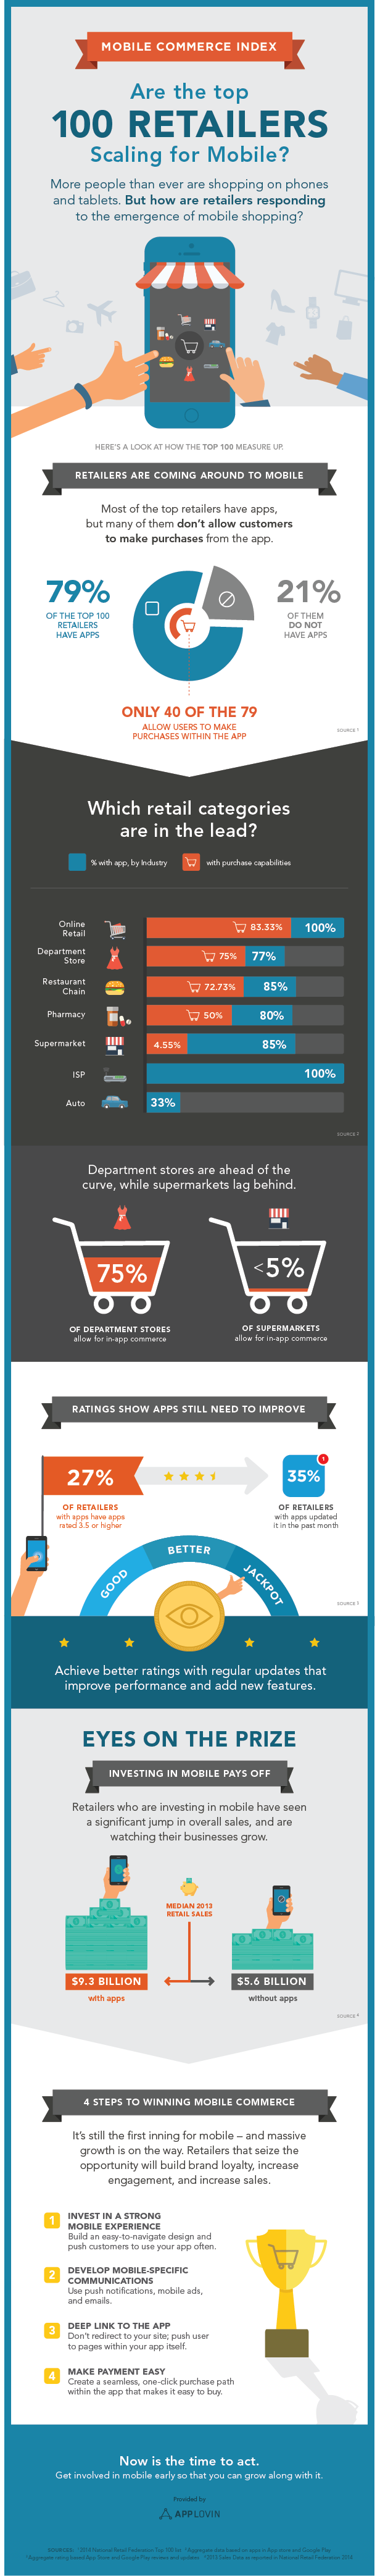 Mobile commerce index: Are the top 100 Retailers Scaling for Mobile? #infographic